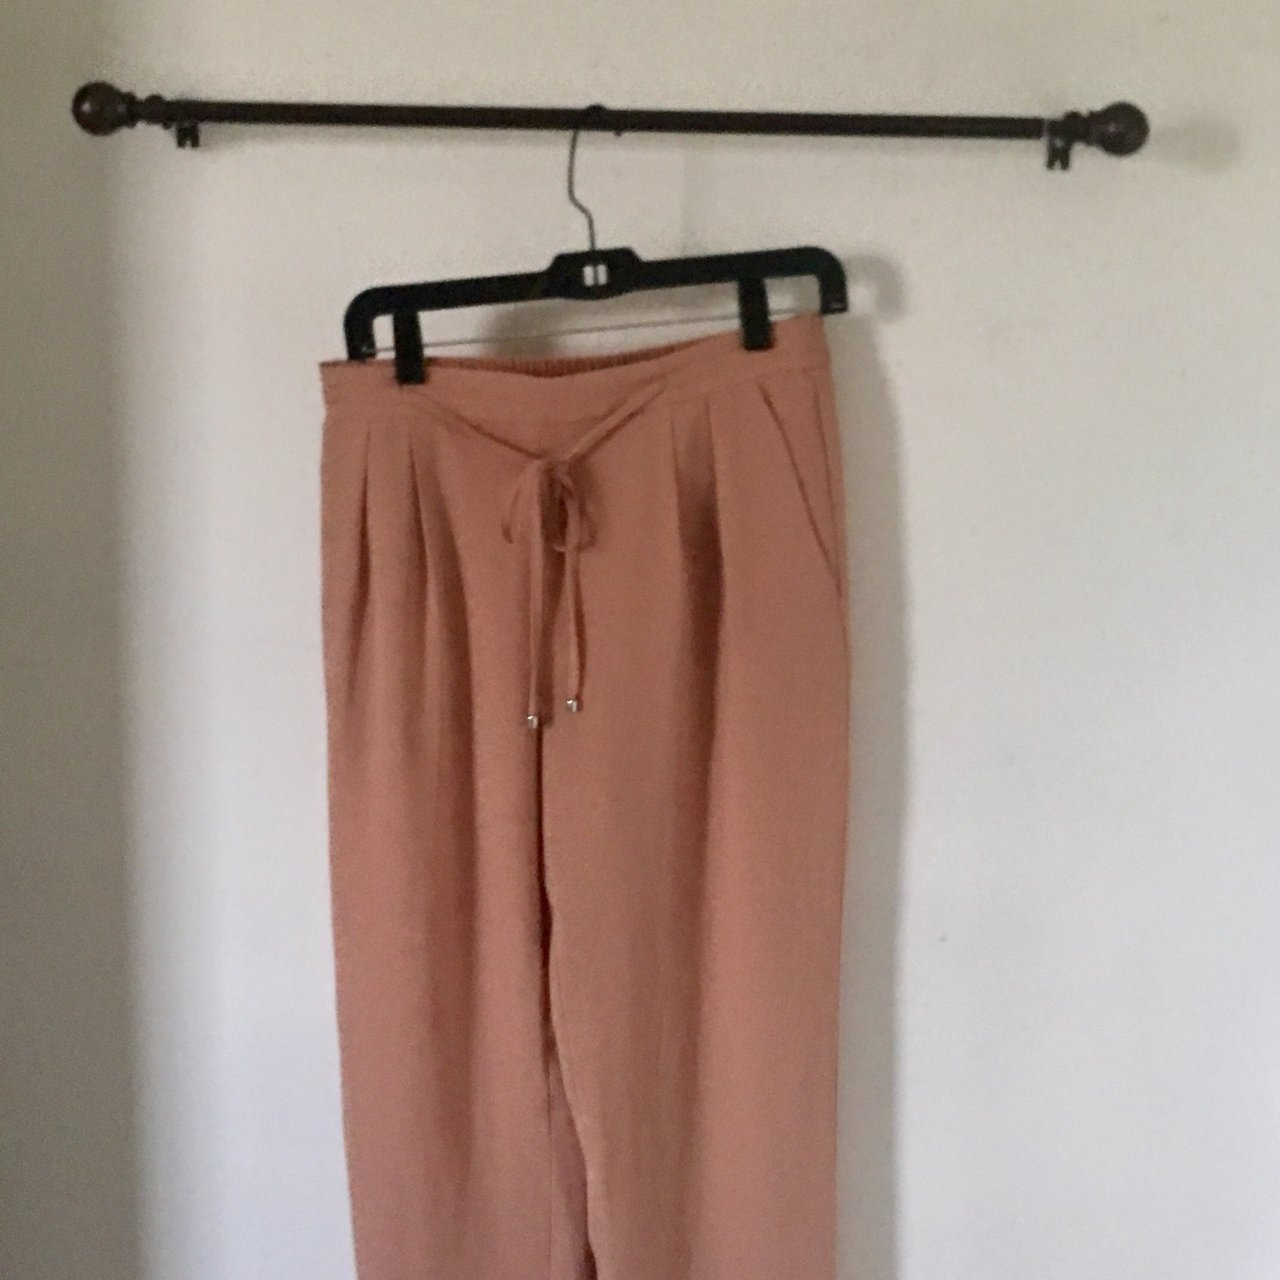 9f72d4f0 Comfy blush colored palazzo pants. Love these pants they're - Depop